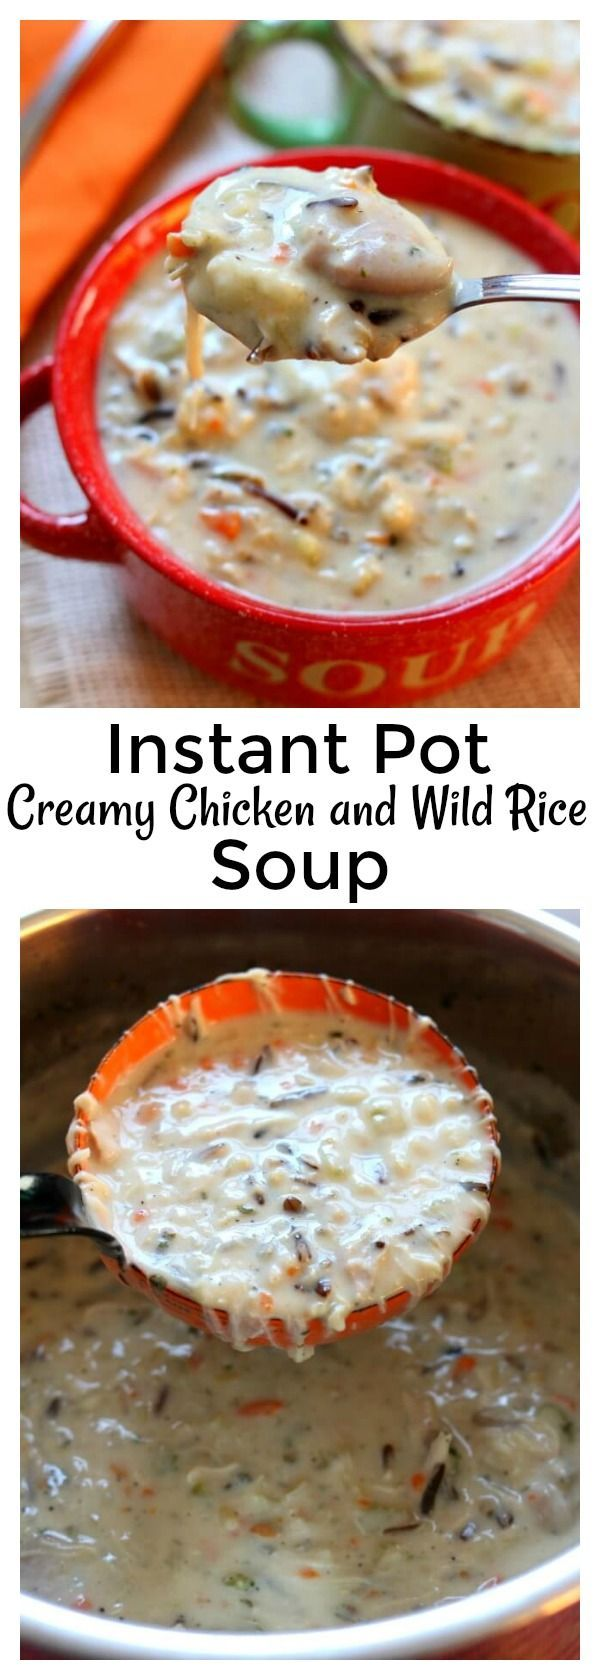 Instant Pot Creamy Wild Rice and Chicken Soup–pure comfort food made quickly in your electric pressure cooker. It's a thick and hearty soup made with wild rice, brown rice, seasonings, vegetables and tender bites of chicken. You can also substitute leftover turkey in this soup. No rice-a-roni packages or pre-packaged foods are used in this version of the soup. #instantpot